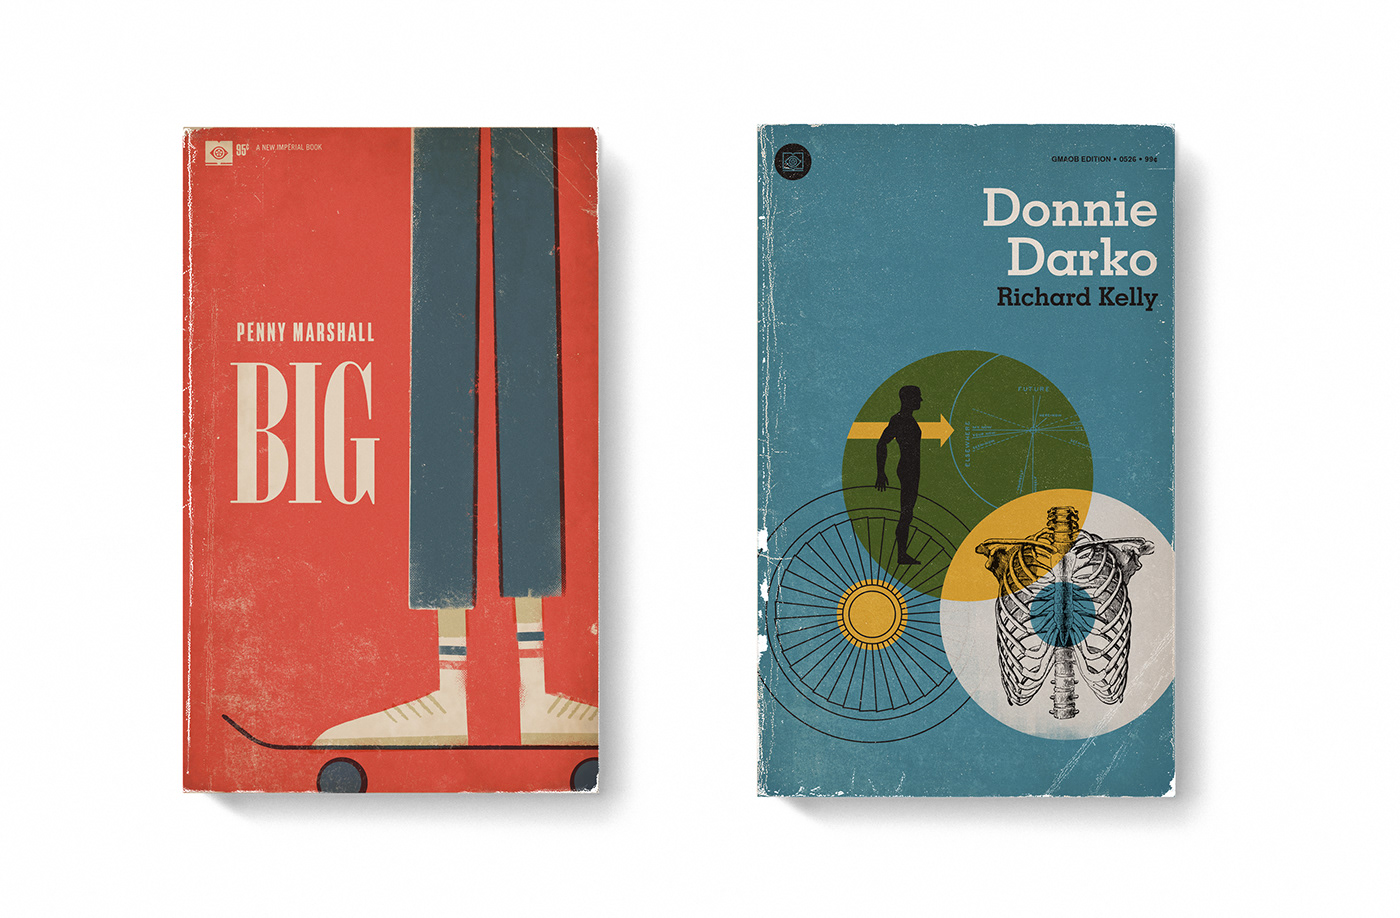 Good Movies as Old Books Avant Garde Vintage Designs Book Cover Illustrations – Big Donnie ...